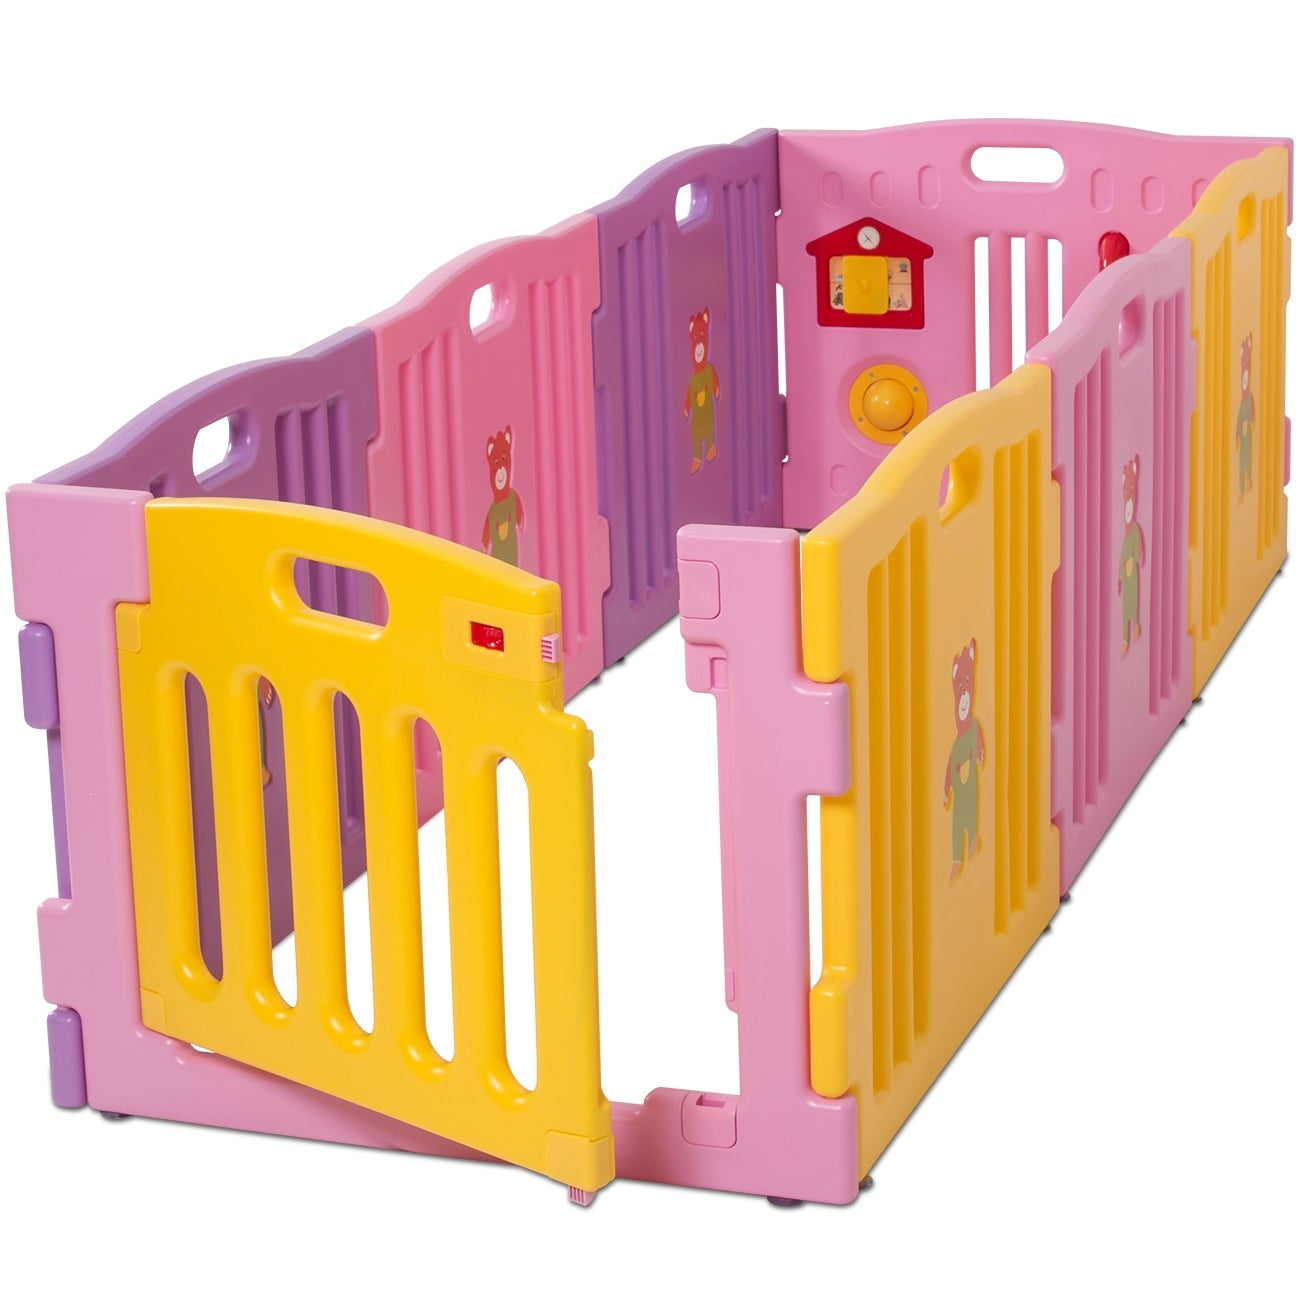 Shop Kidzone Baby Playpen Kids 8 Panel Safety Play Center Yard Home Indoor  / Outdoor Girls (Pink)   Free Shipping Today   Overstock.com   16085166